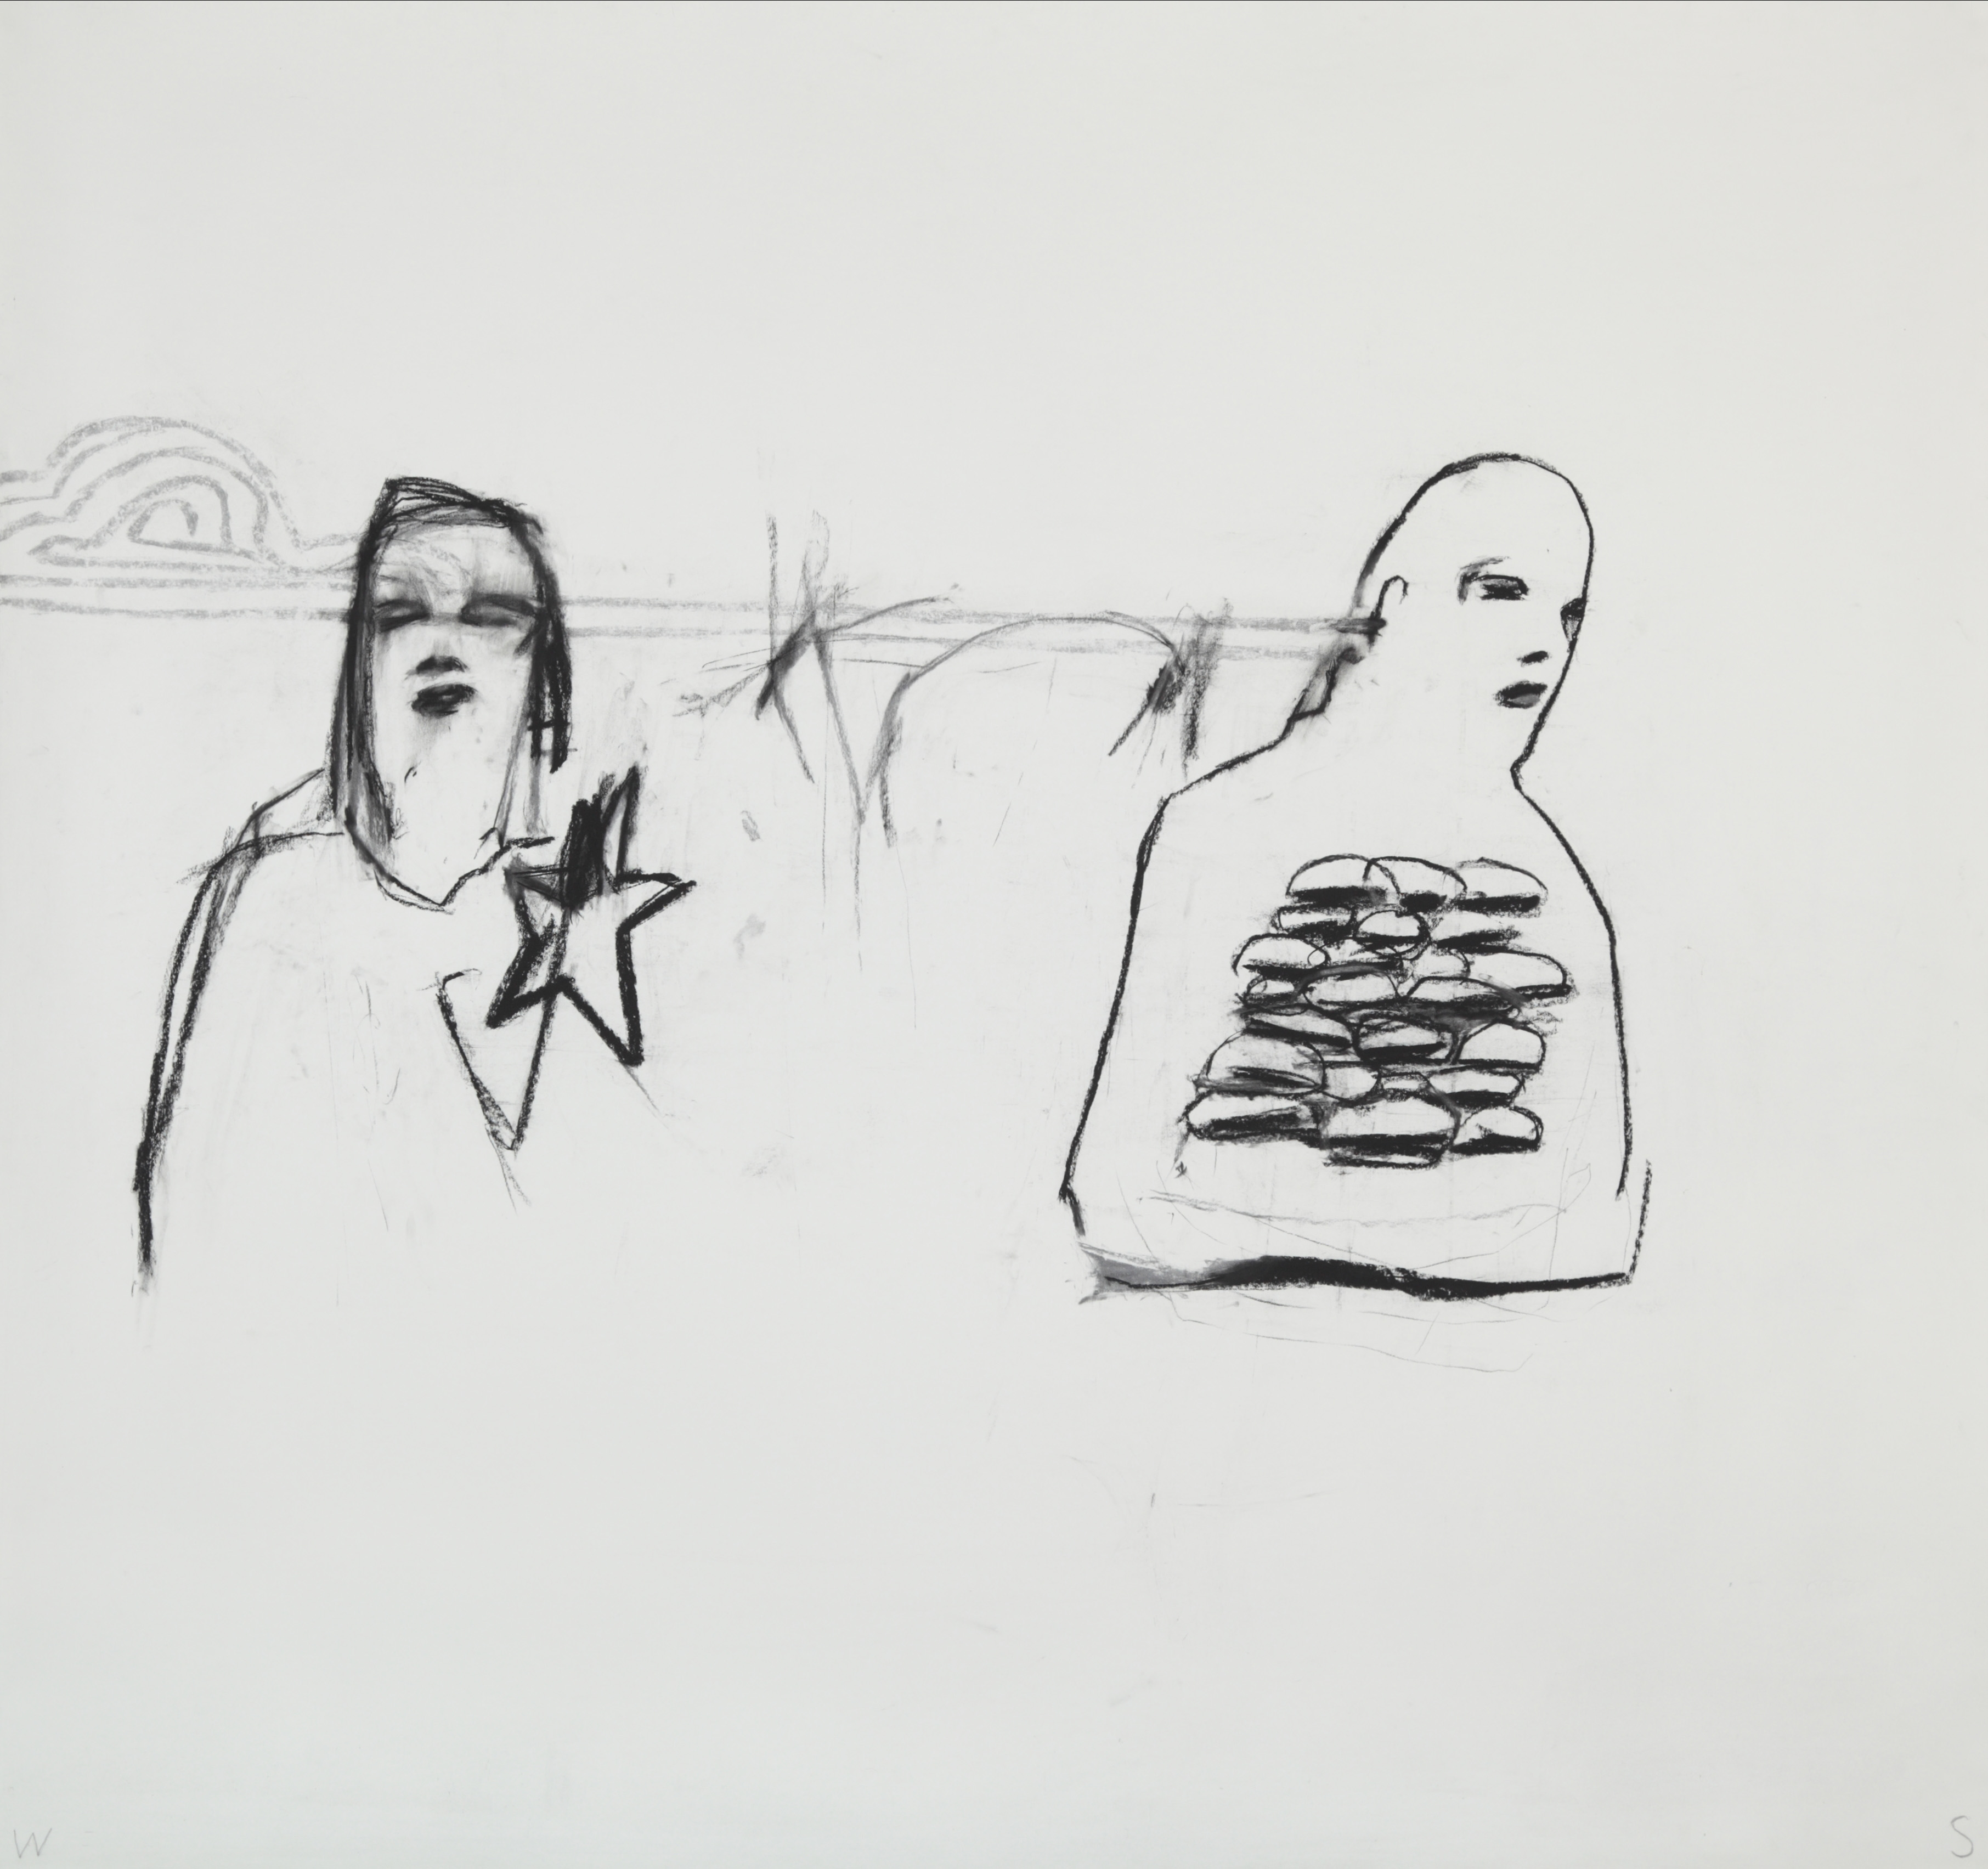 <p><em>Untitled (06/23/09)</em><span class='media'>charcoal on paper</span>72 x 68 in (182.9 x 172.7 cm)<br>2009<br><a class='inquire' href='mailto:info@gildargallery.com?subject=Artwork Inquiry WSTO0063&body=I am interested in finding out more about Untitled (06/23/09) by William Stockman'>Inquire</a></p>